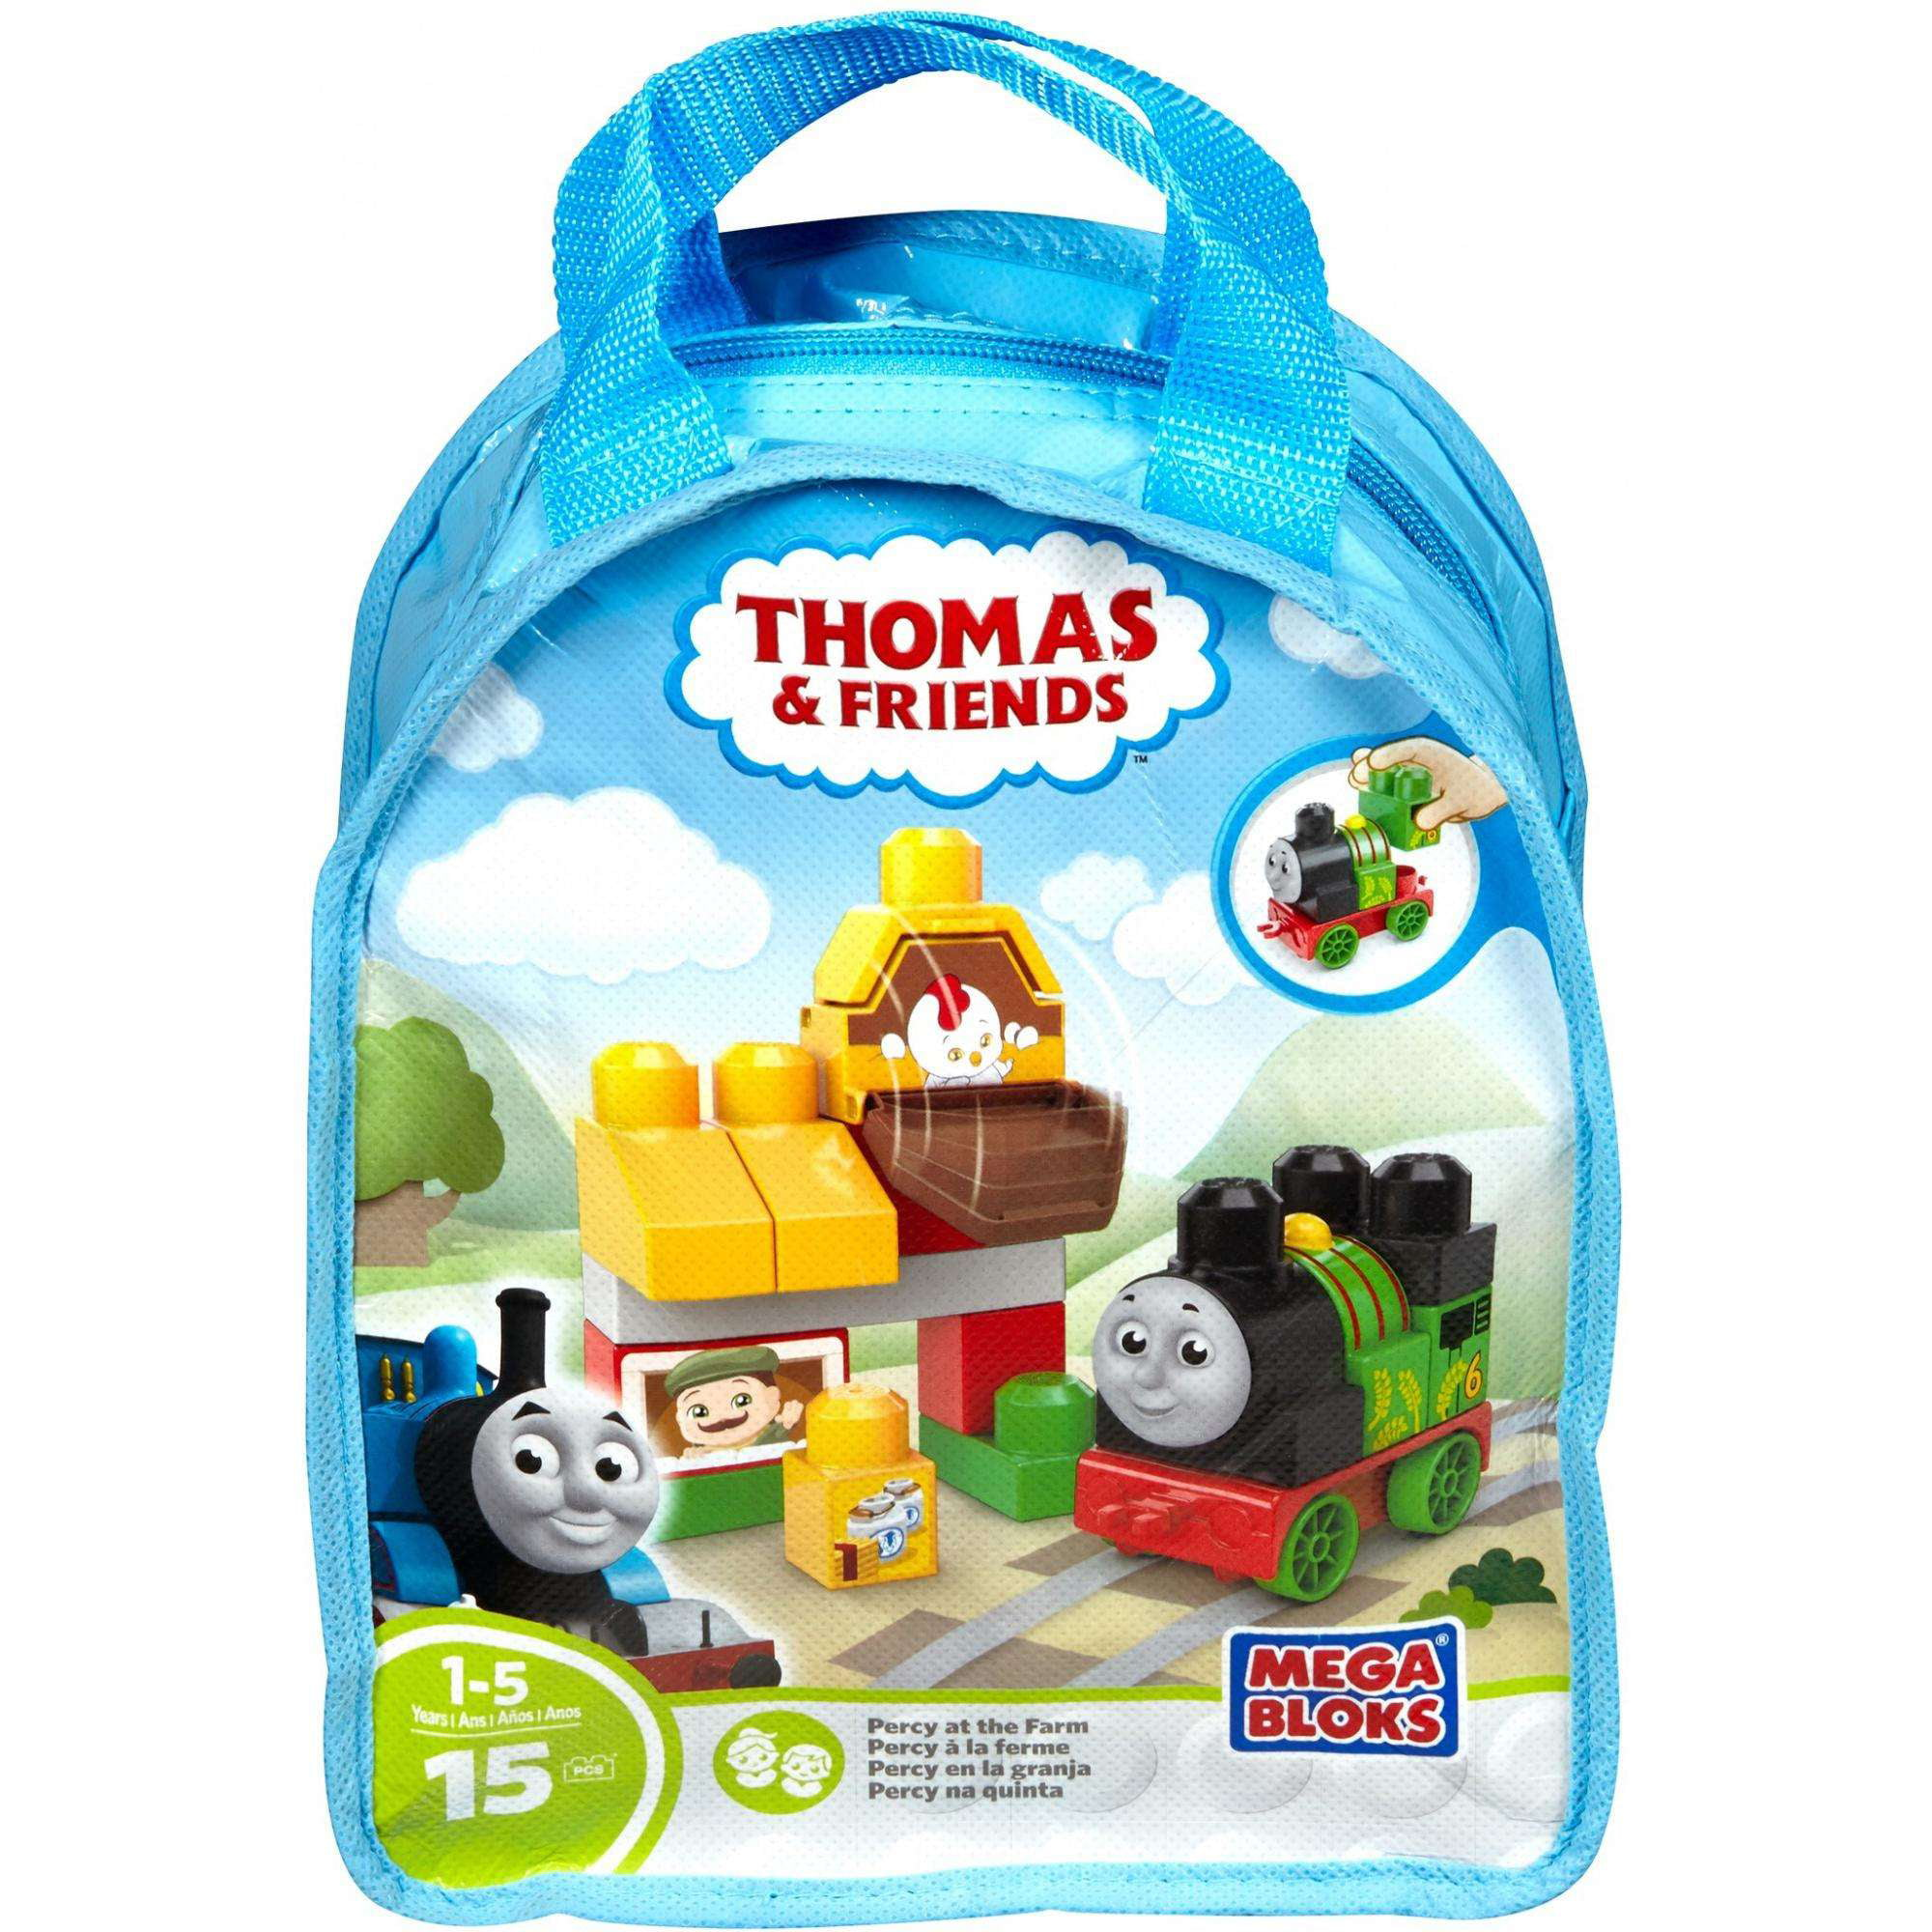 Mega Bloks Thomas & Friends Percy at the Farm Building Bag by Mega Brands, Inc.